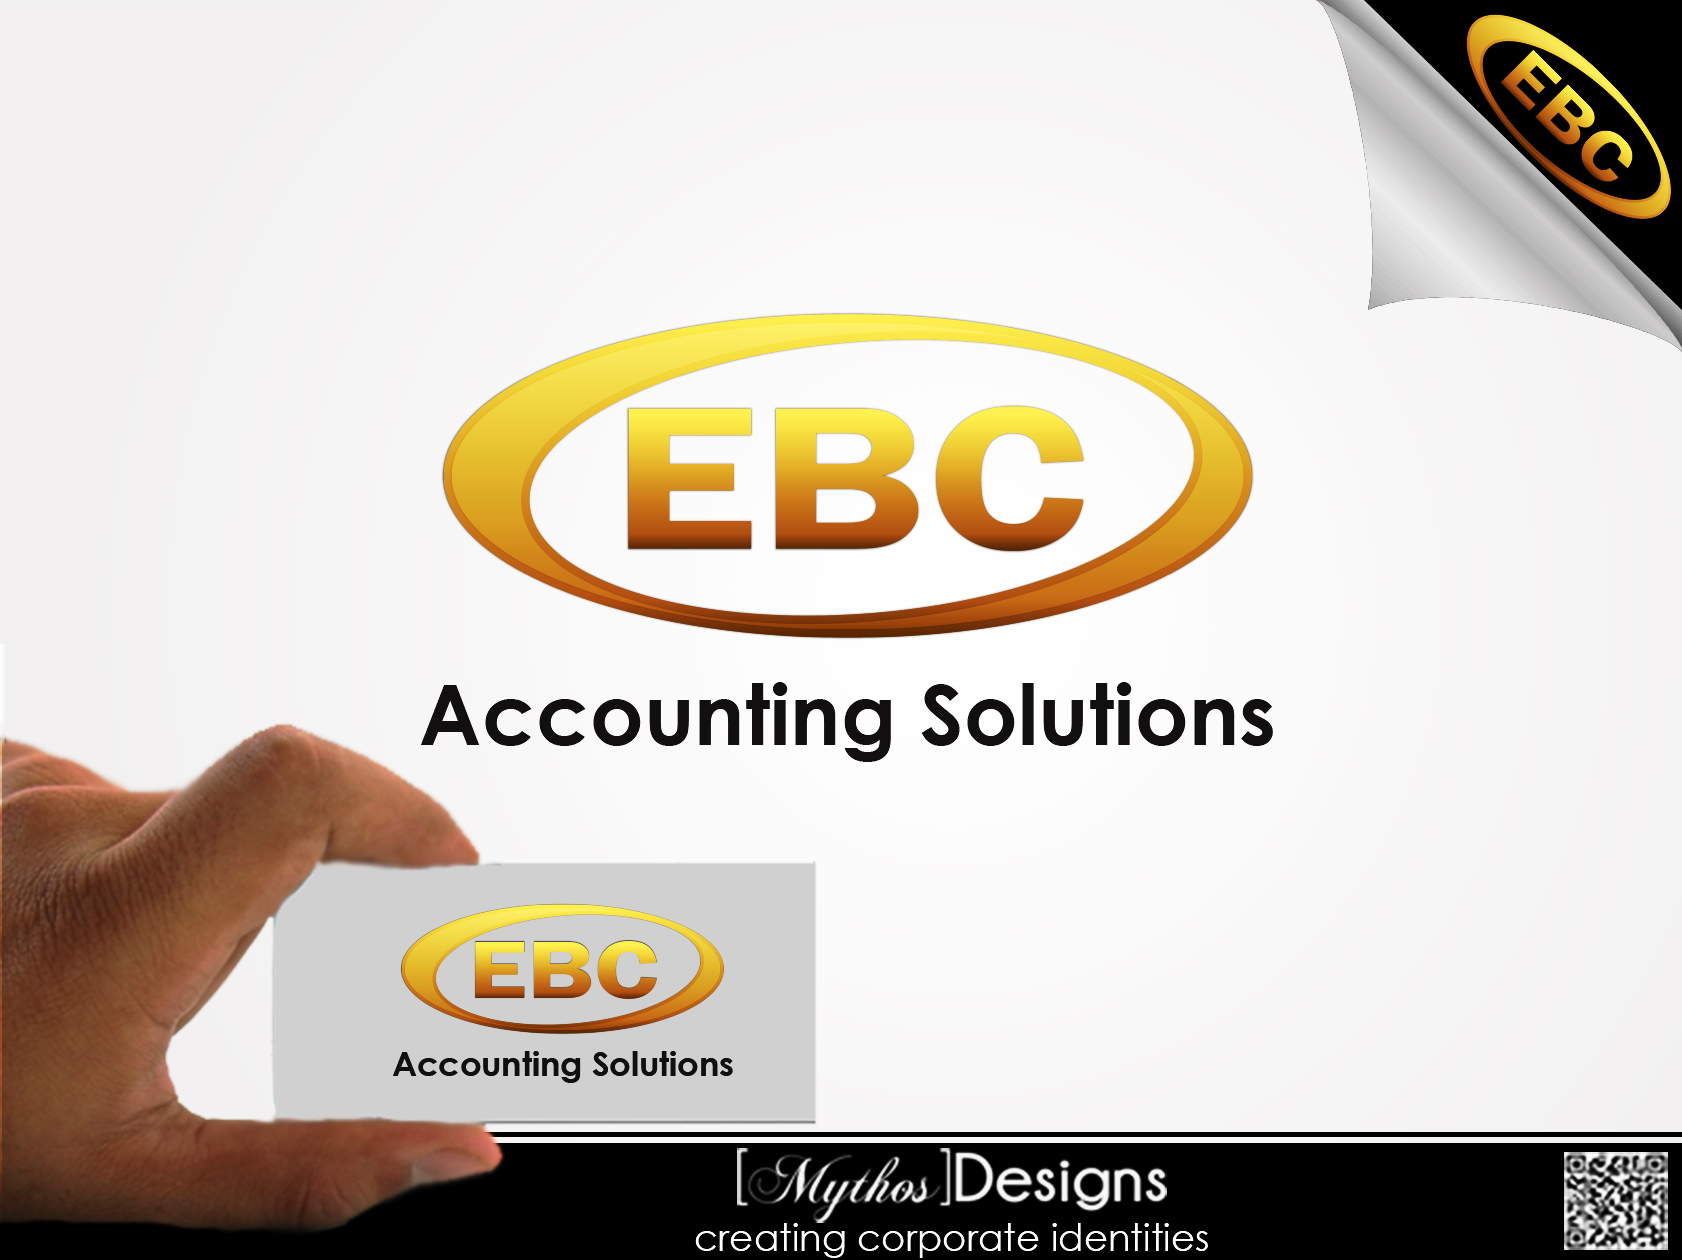 Logo Design by Mythos Designs - Entry No. 228 in the Logo Design Contest New Logo Design for EBC Accounting Solutions.